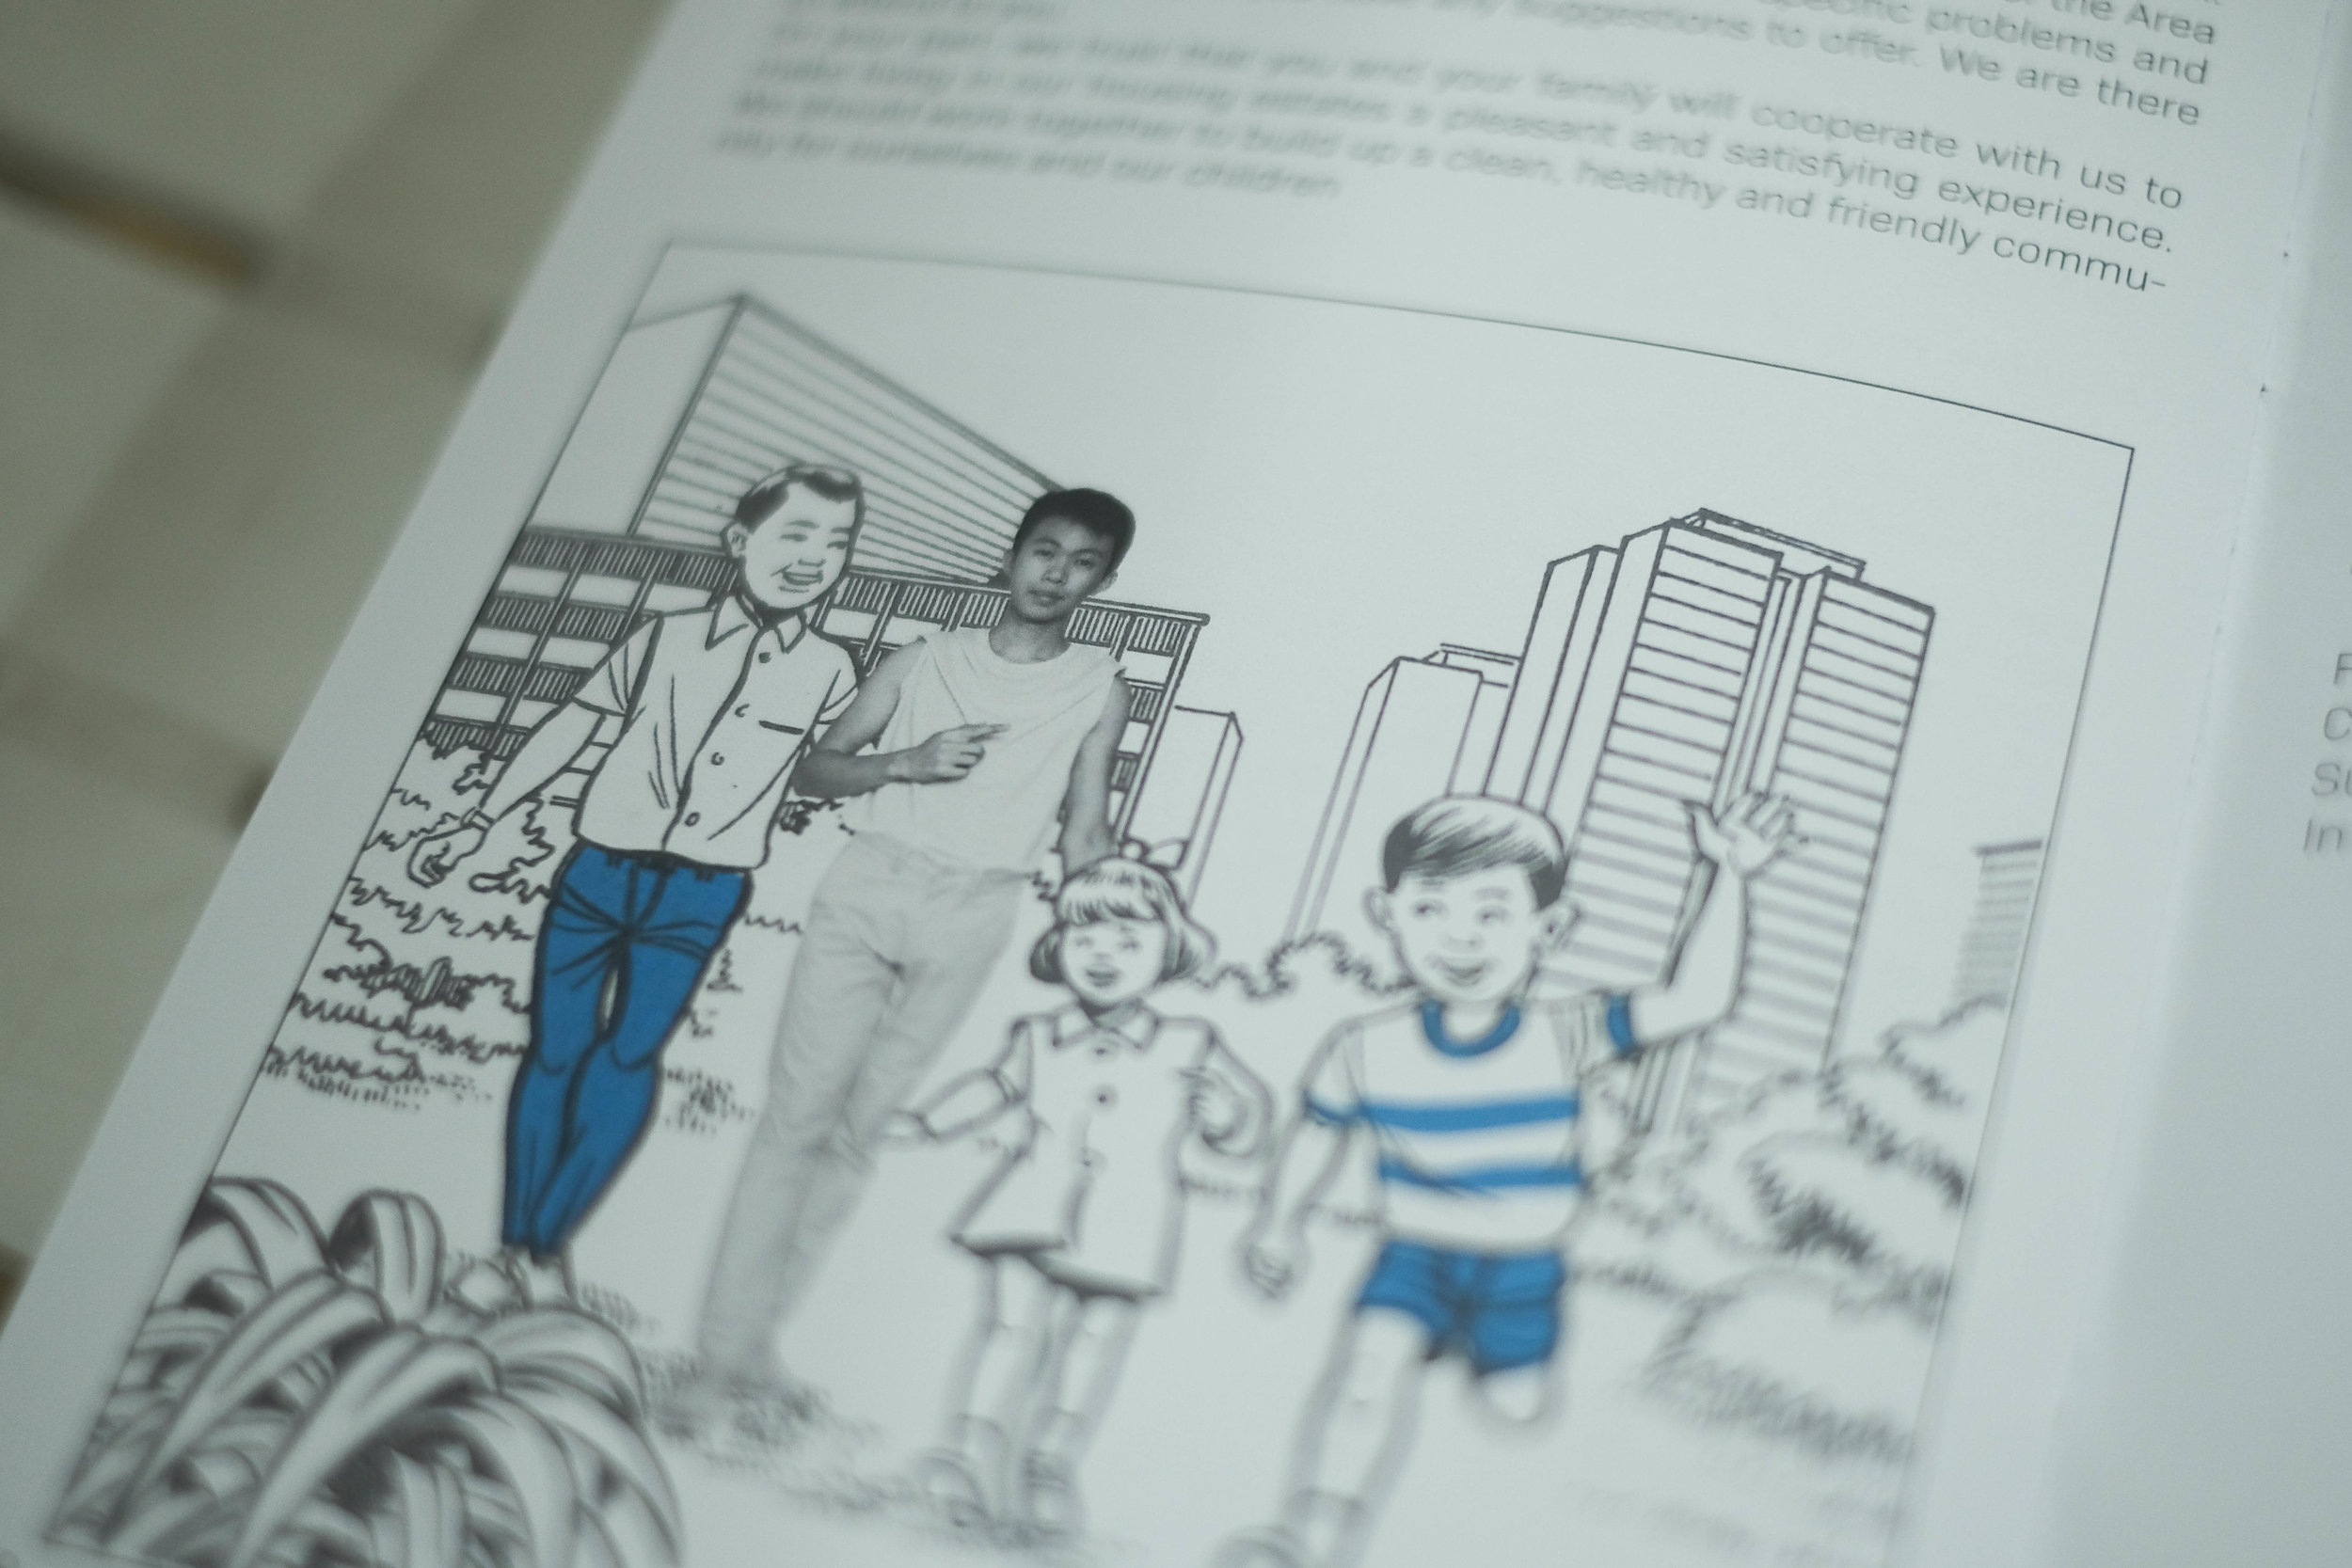 Sean Cham, the creator of First Storeys, created a handbook in which he features prominently. The handbook gaily prepares residents for the process of resettlement.